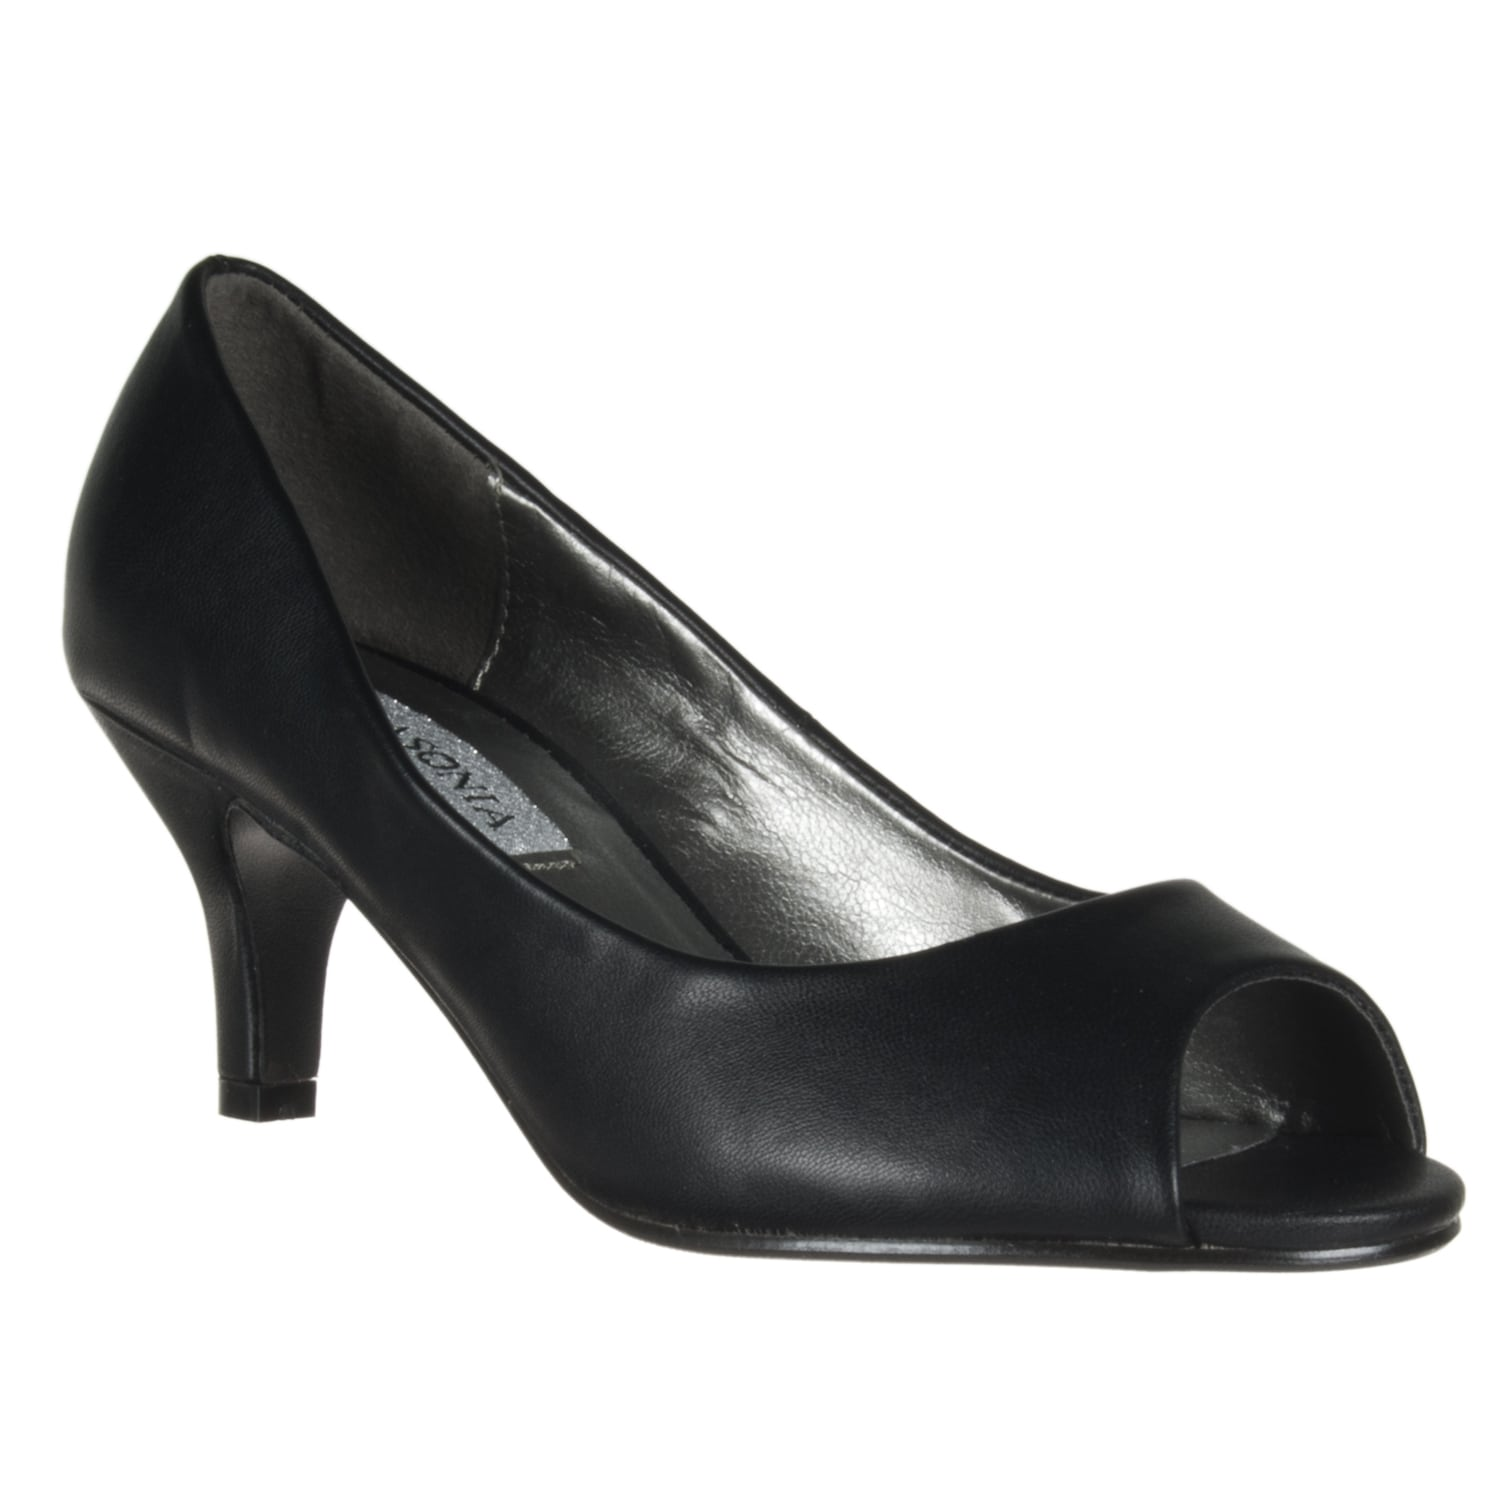 Riverberry Women's Black Peep Toe Pumps